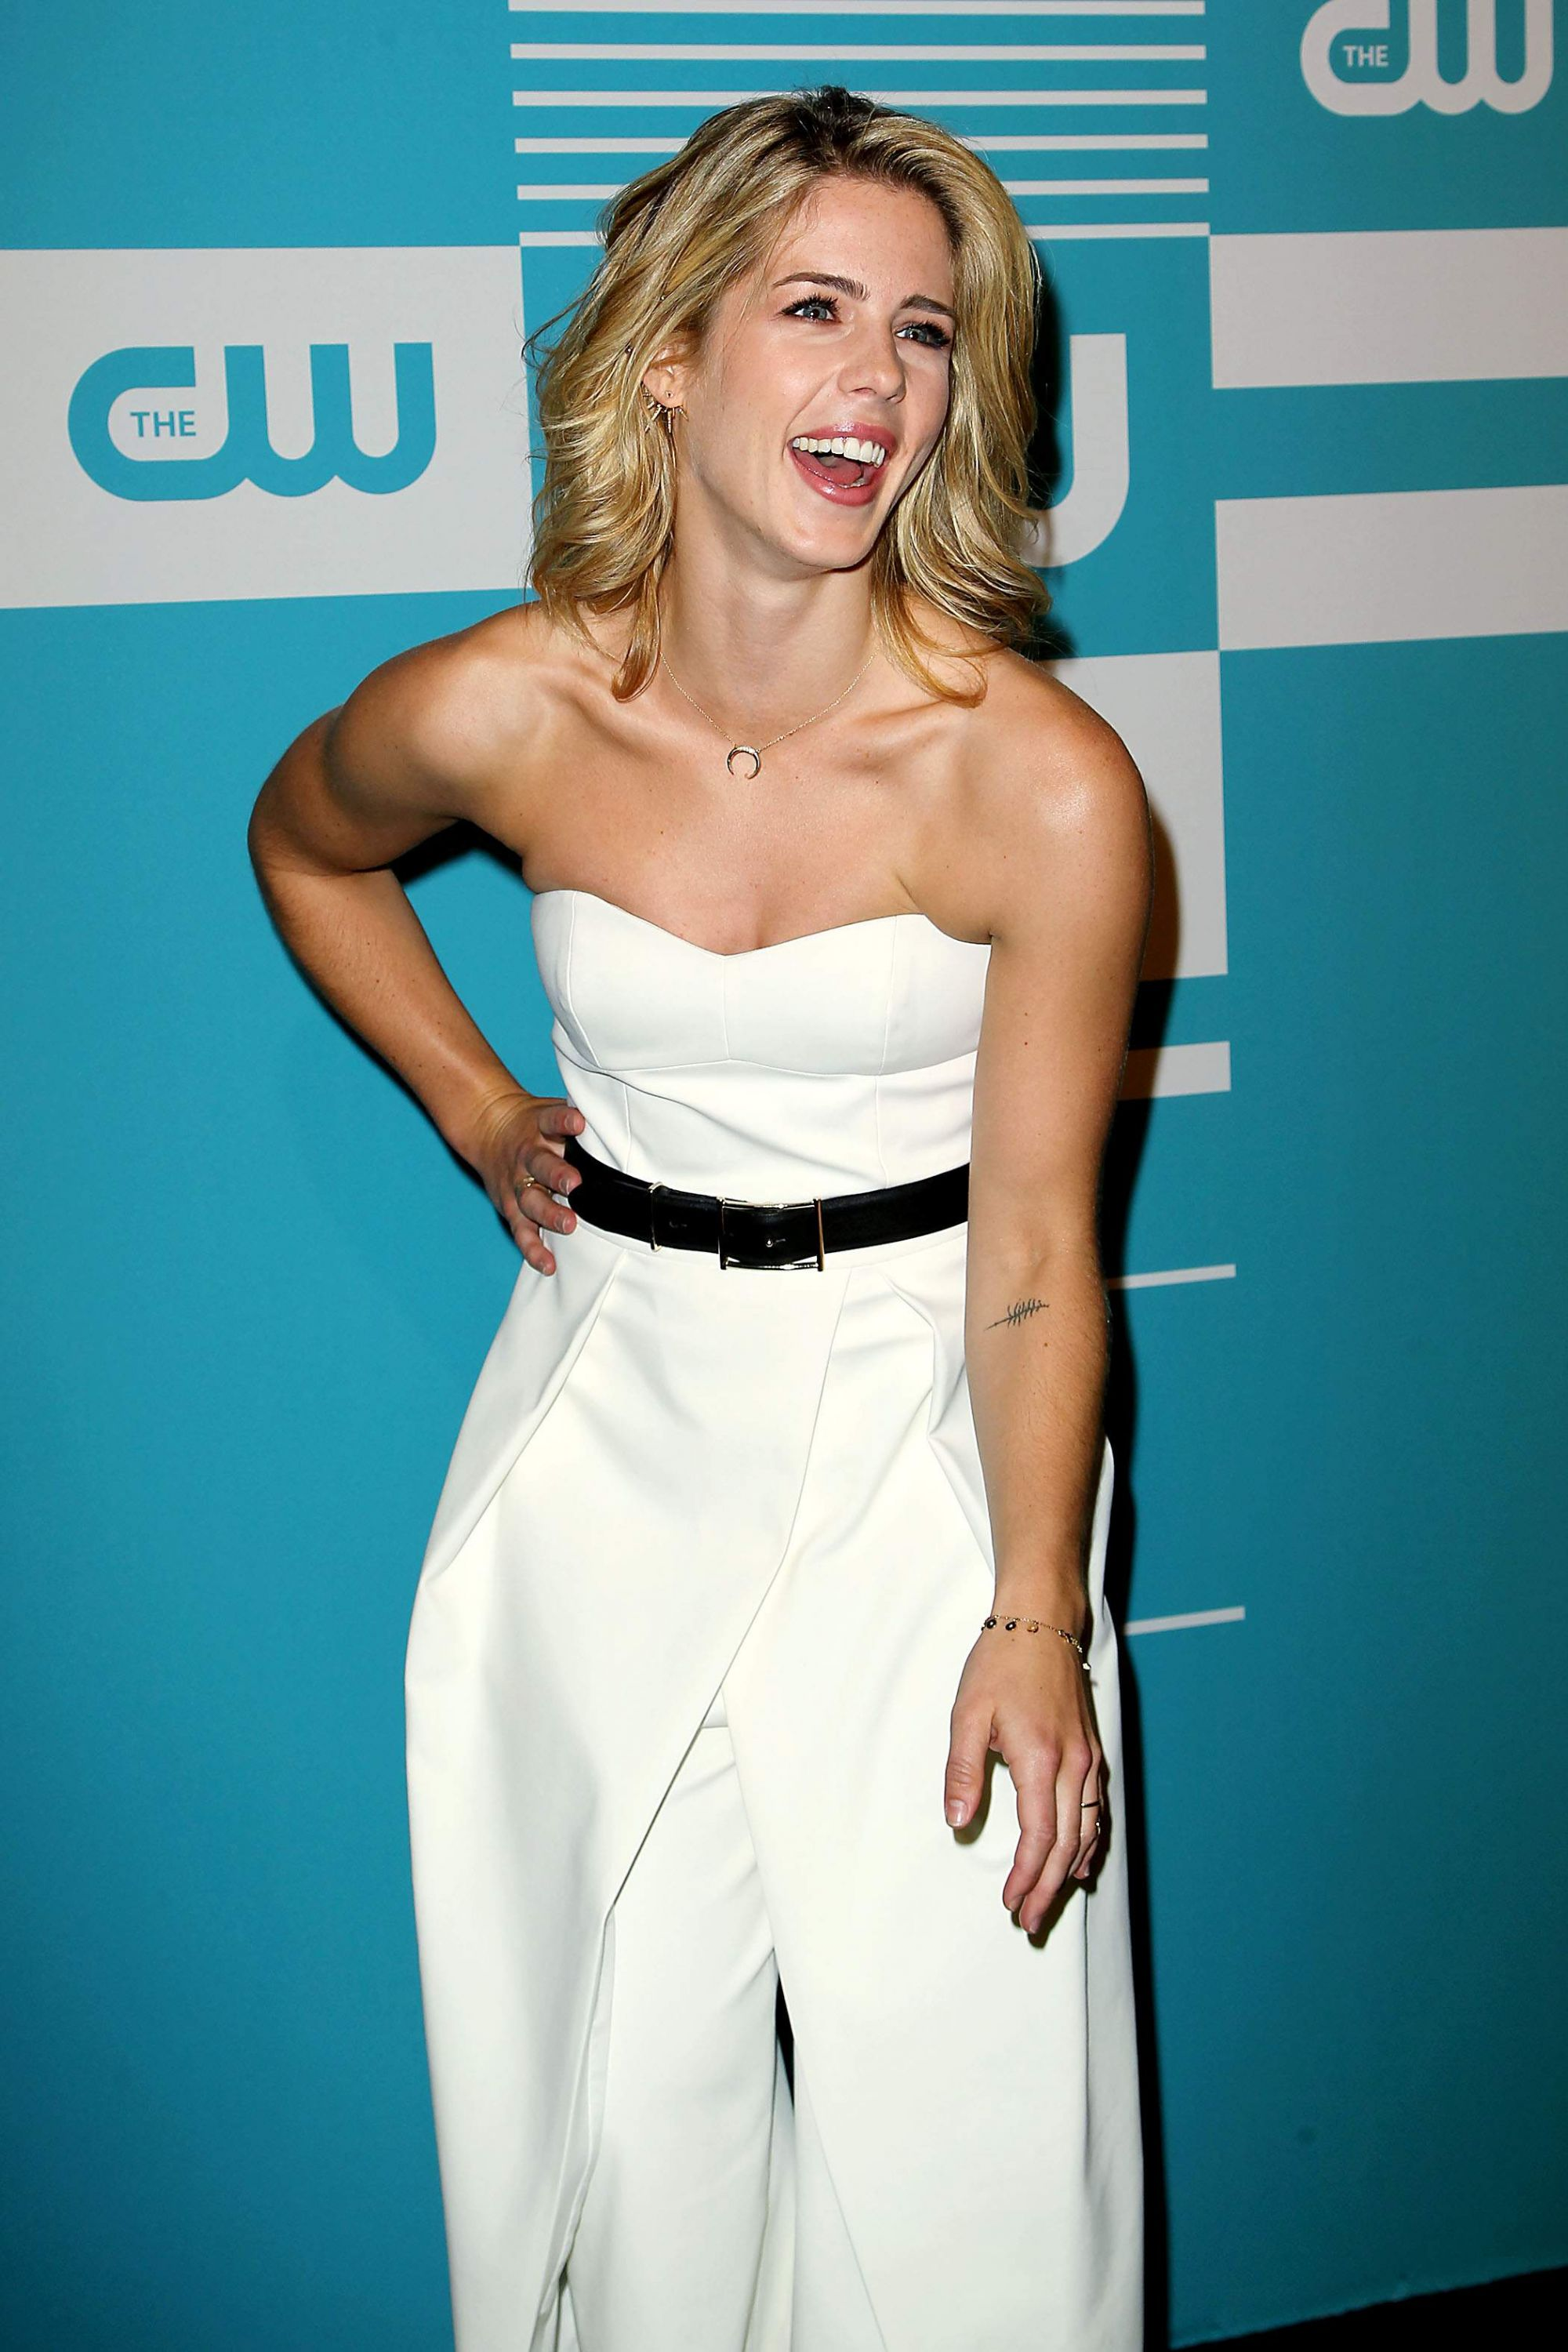 The CW Network's 2015 Upfront